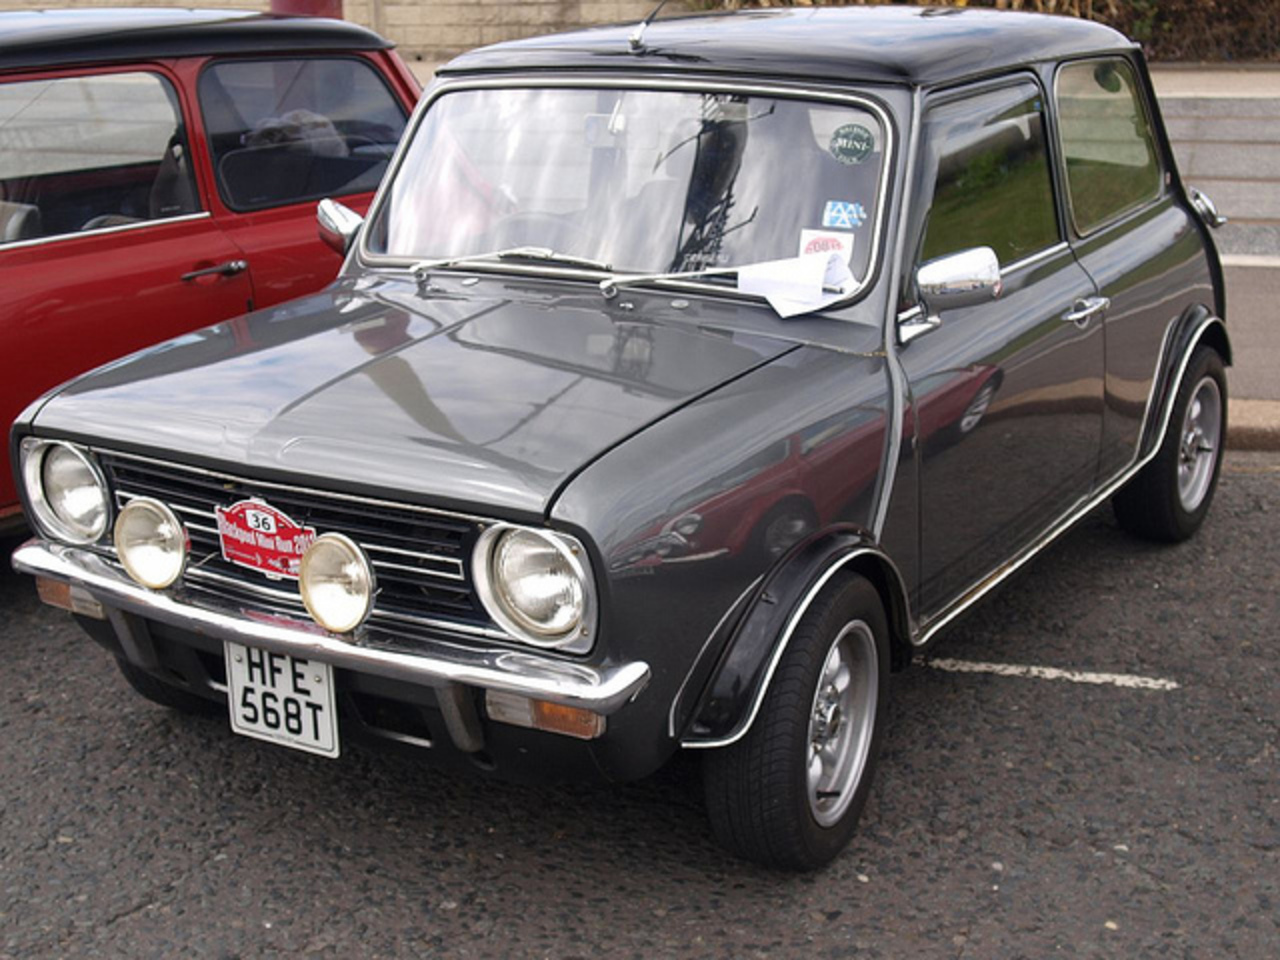 Austin Morris Mini 1275 GT Clubman - 1999 | Flickr - Photo Sharing!